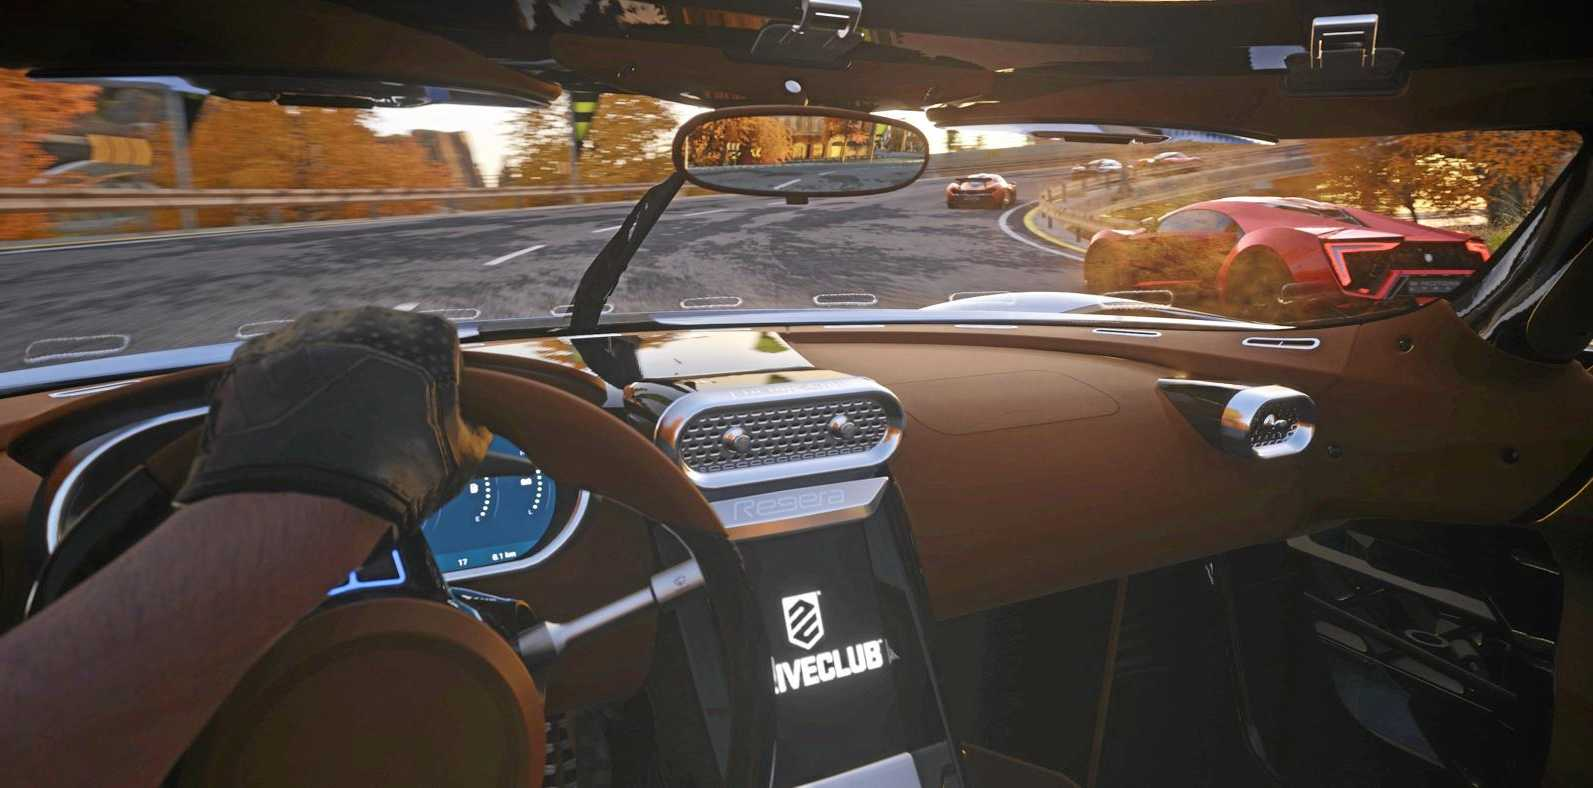 Driveclub VR is as close as you could get to the real thing.